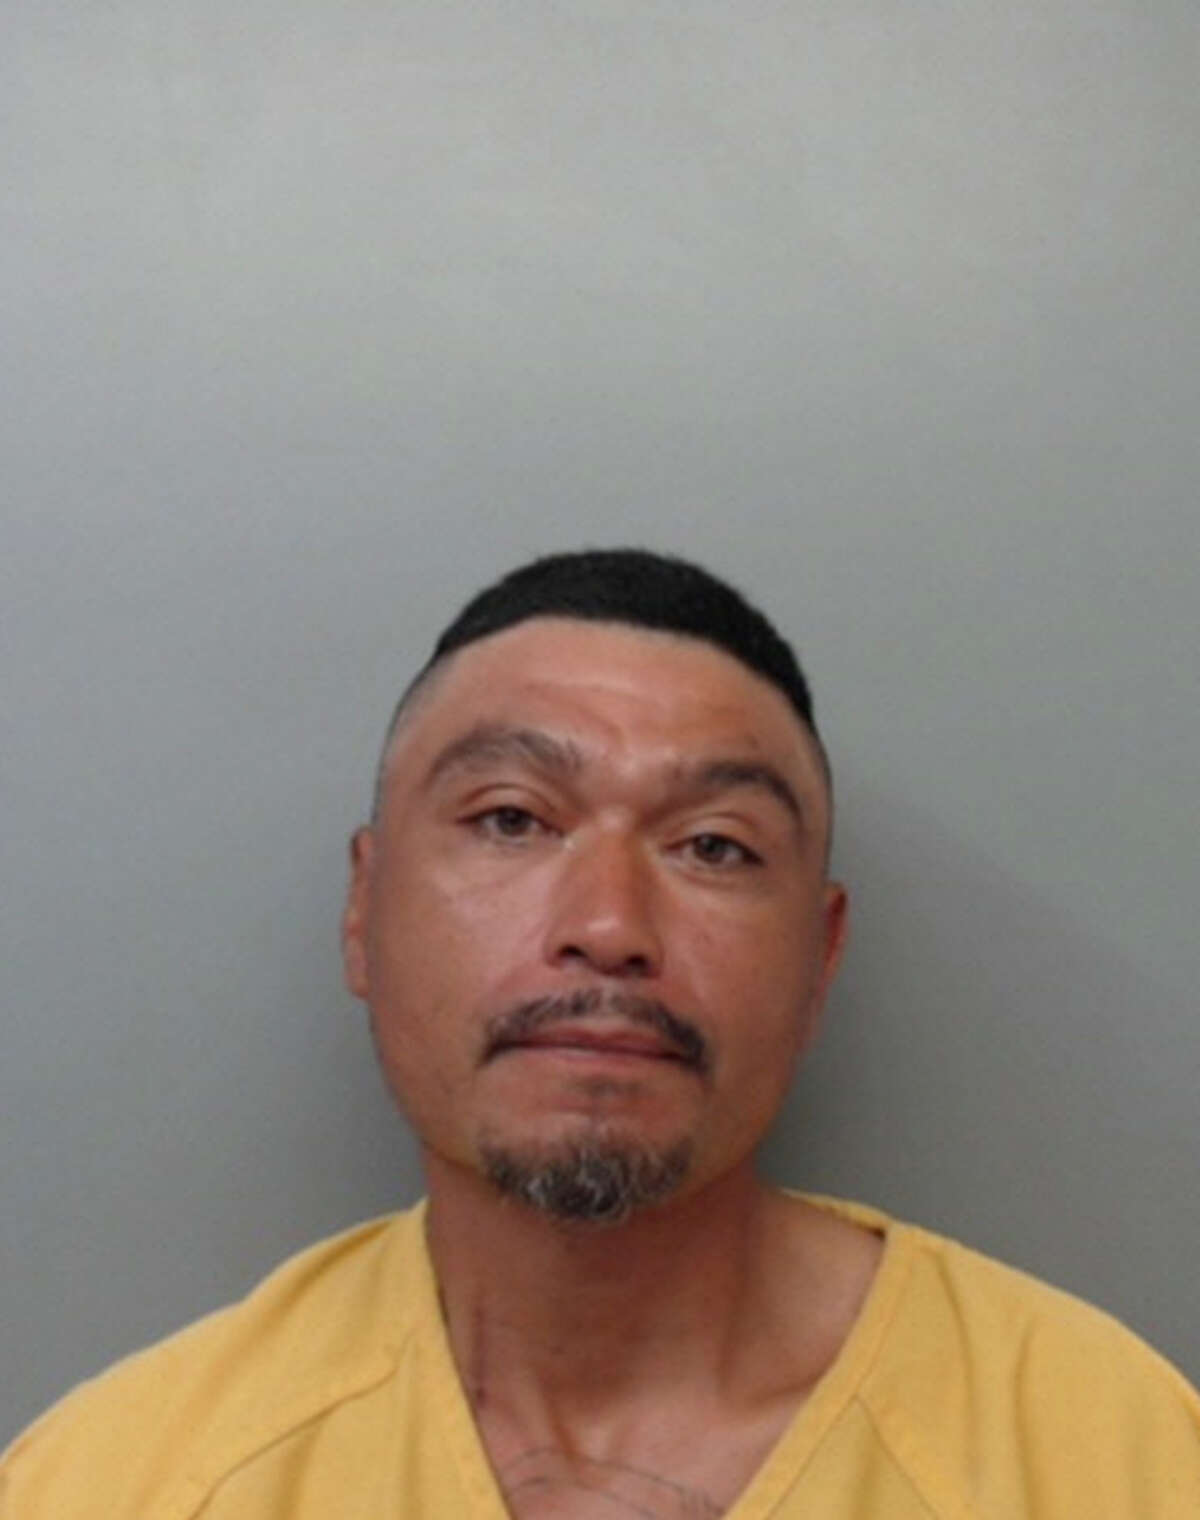 Rosendo Inocencio, 38, was charged with robbery.